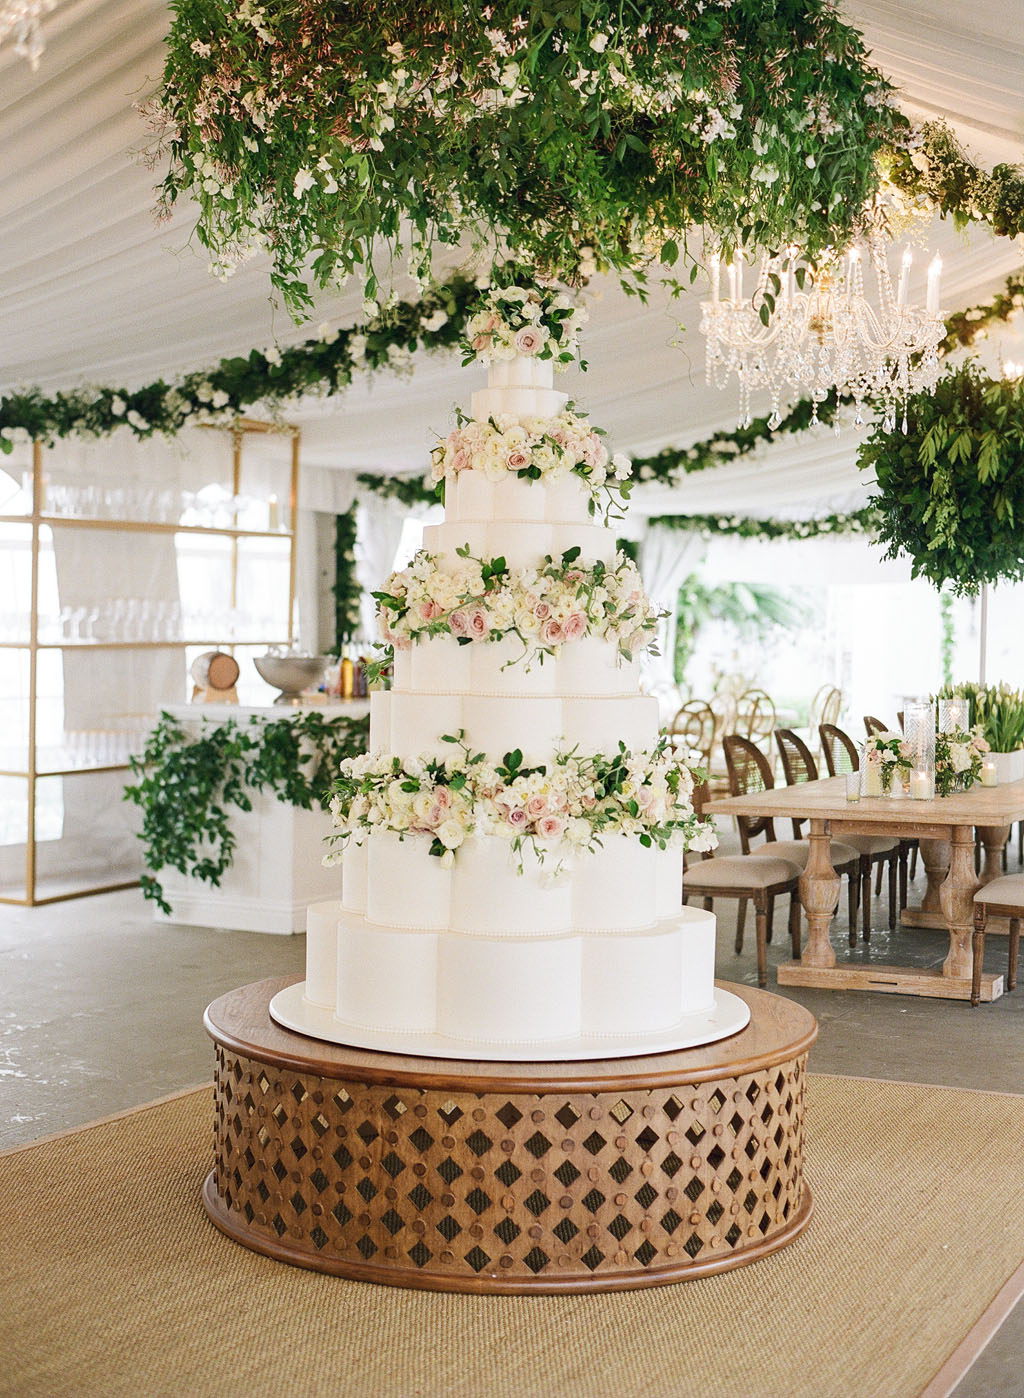 25 Over-the-Top Wedding Cakes We Can't Get Enough Of